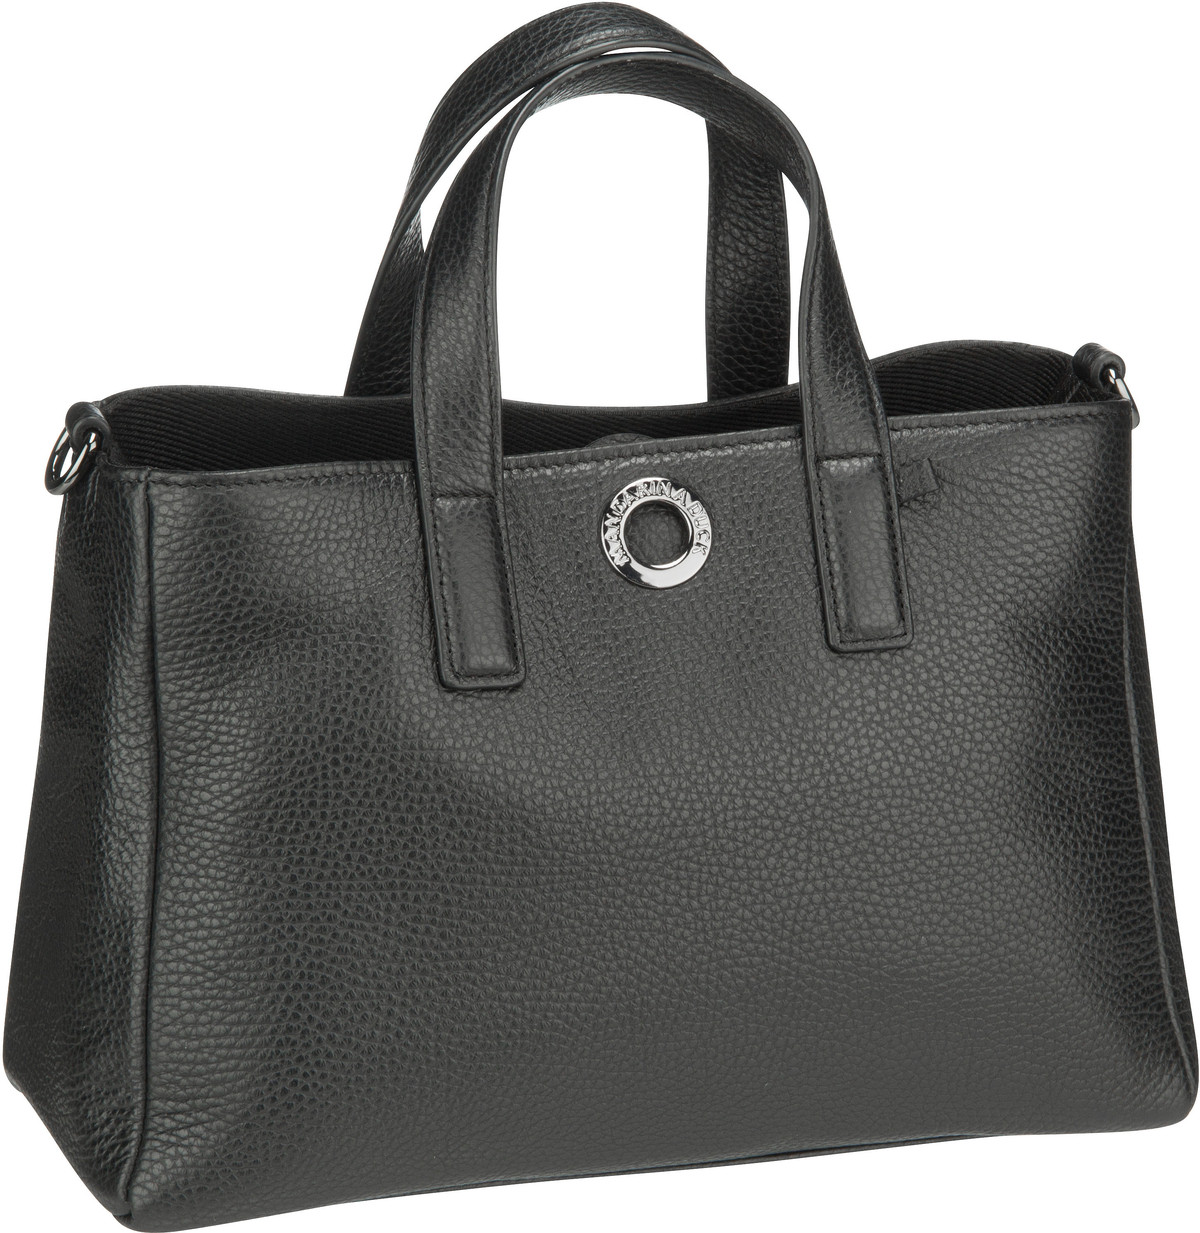 Handtasche Mellow Leather Tote Bag FZT28 Nero